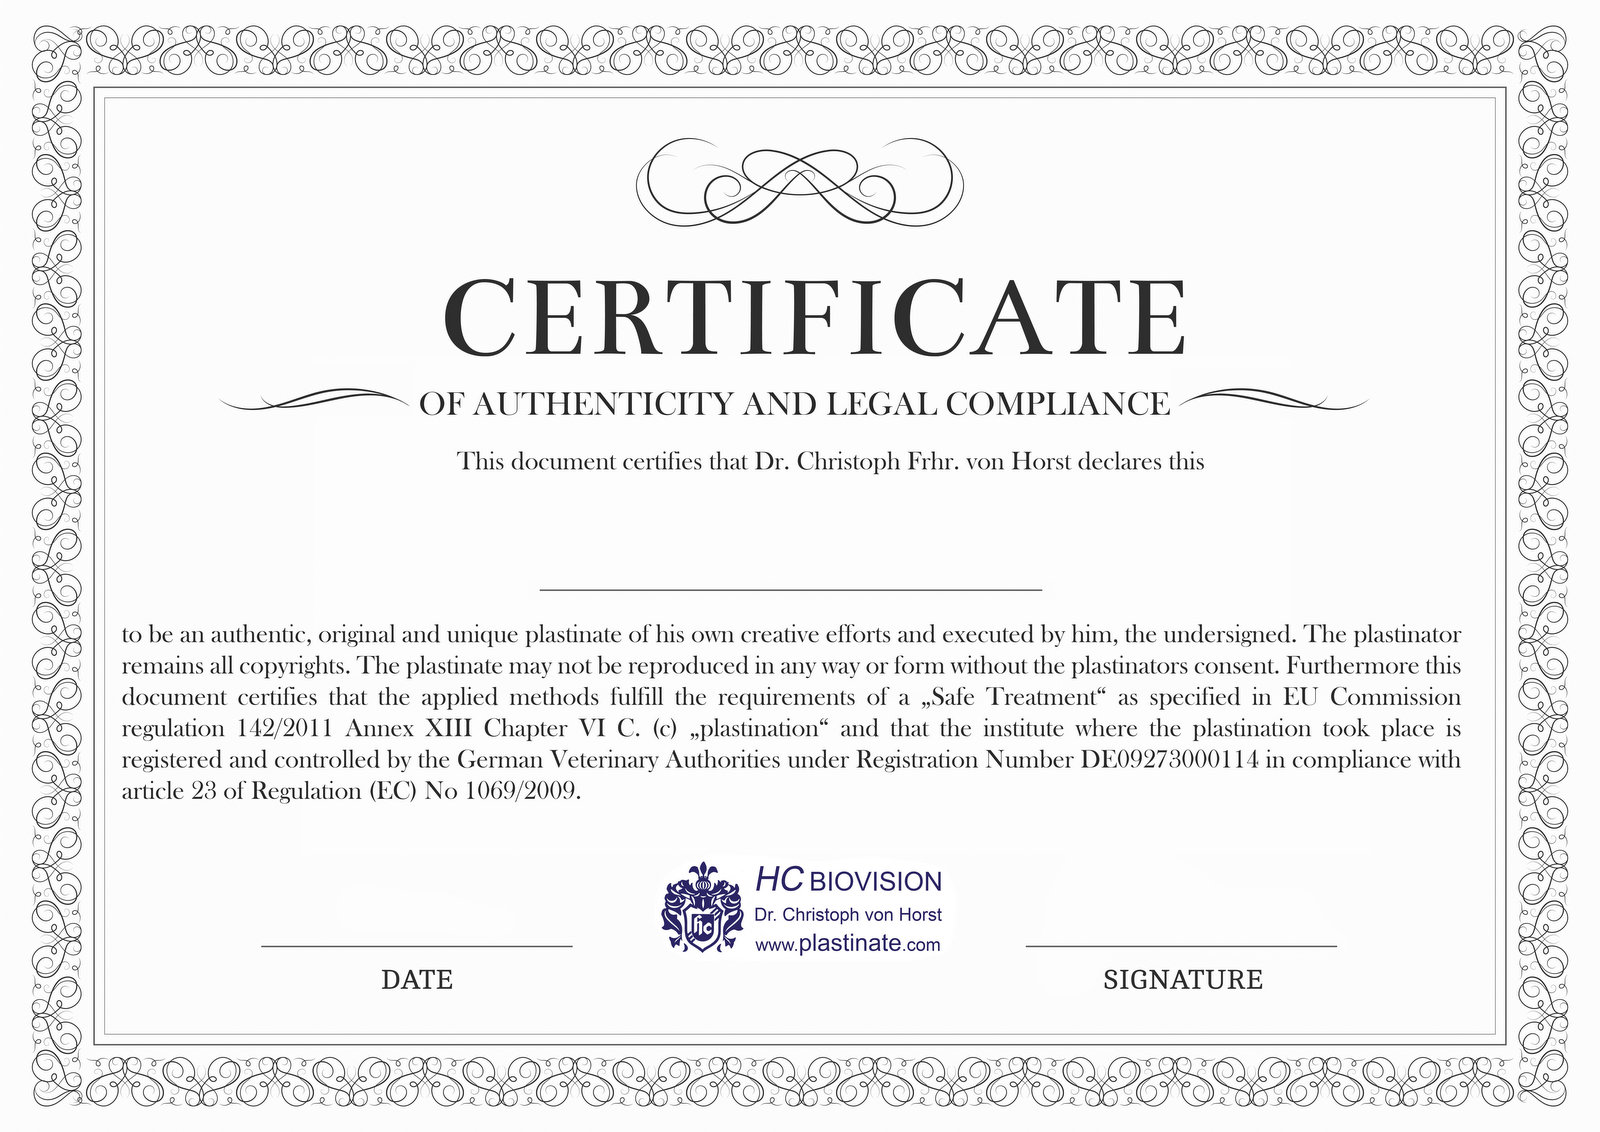 Certificate of authenticity and legal compliance